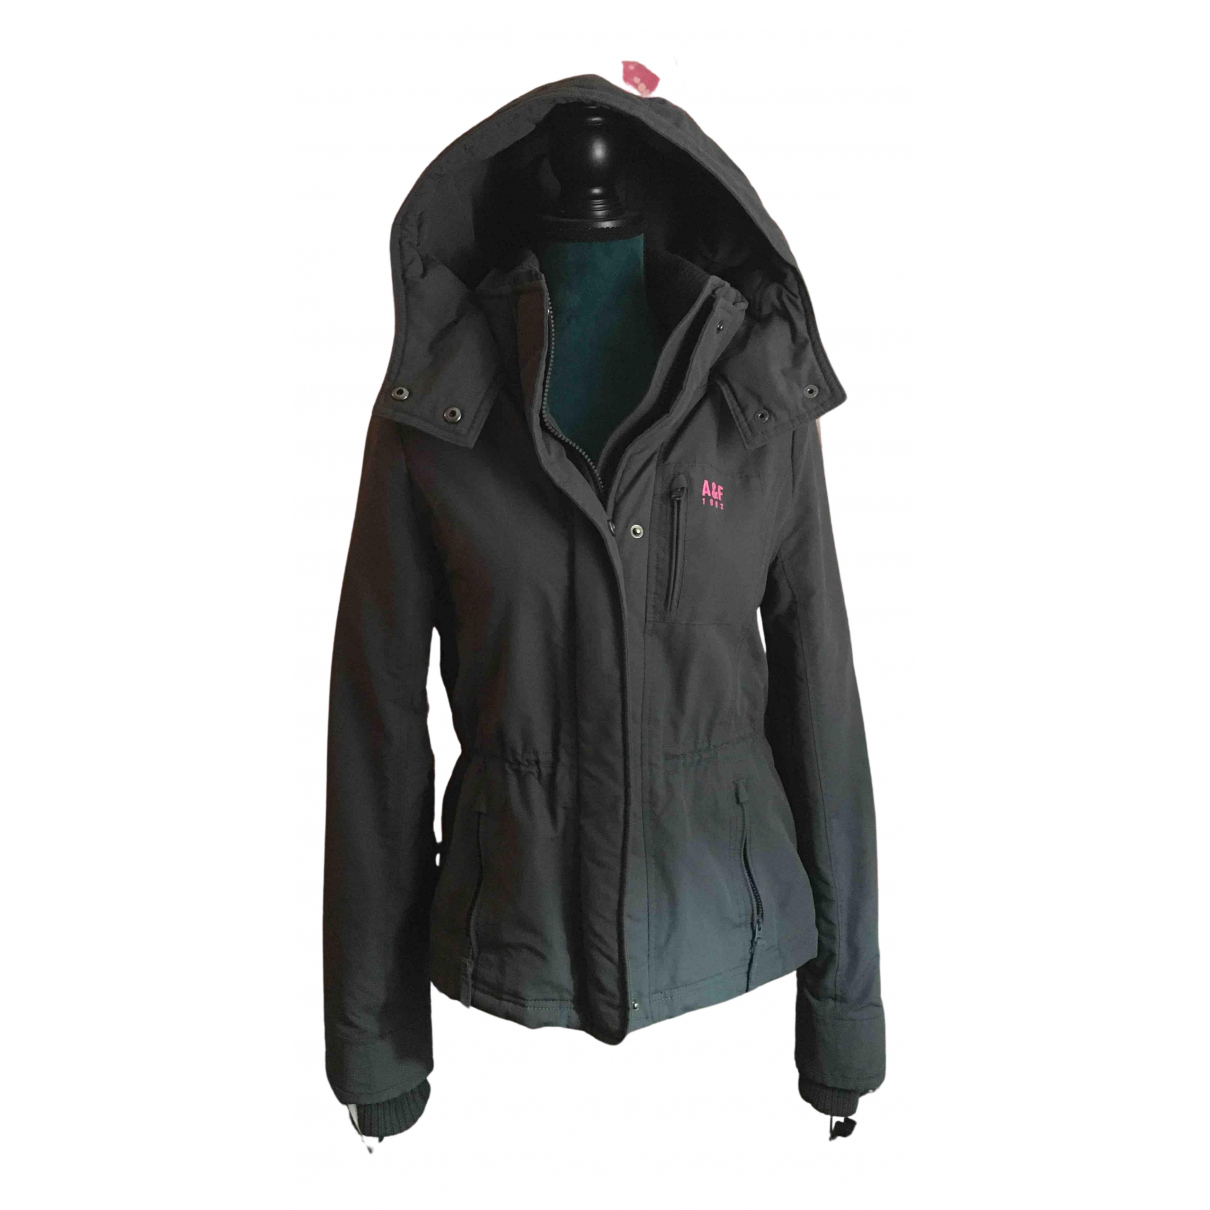 Chaqueton Abercrombie & Fitch